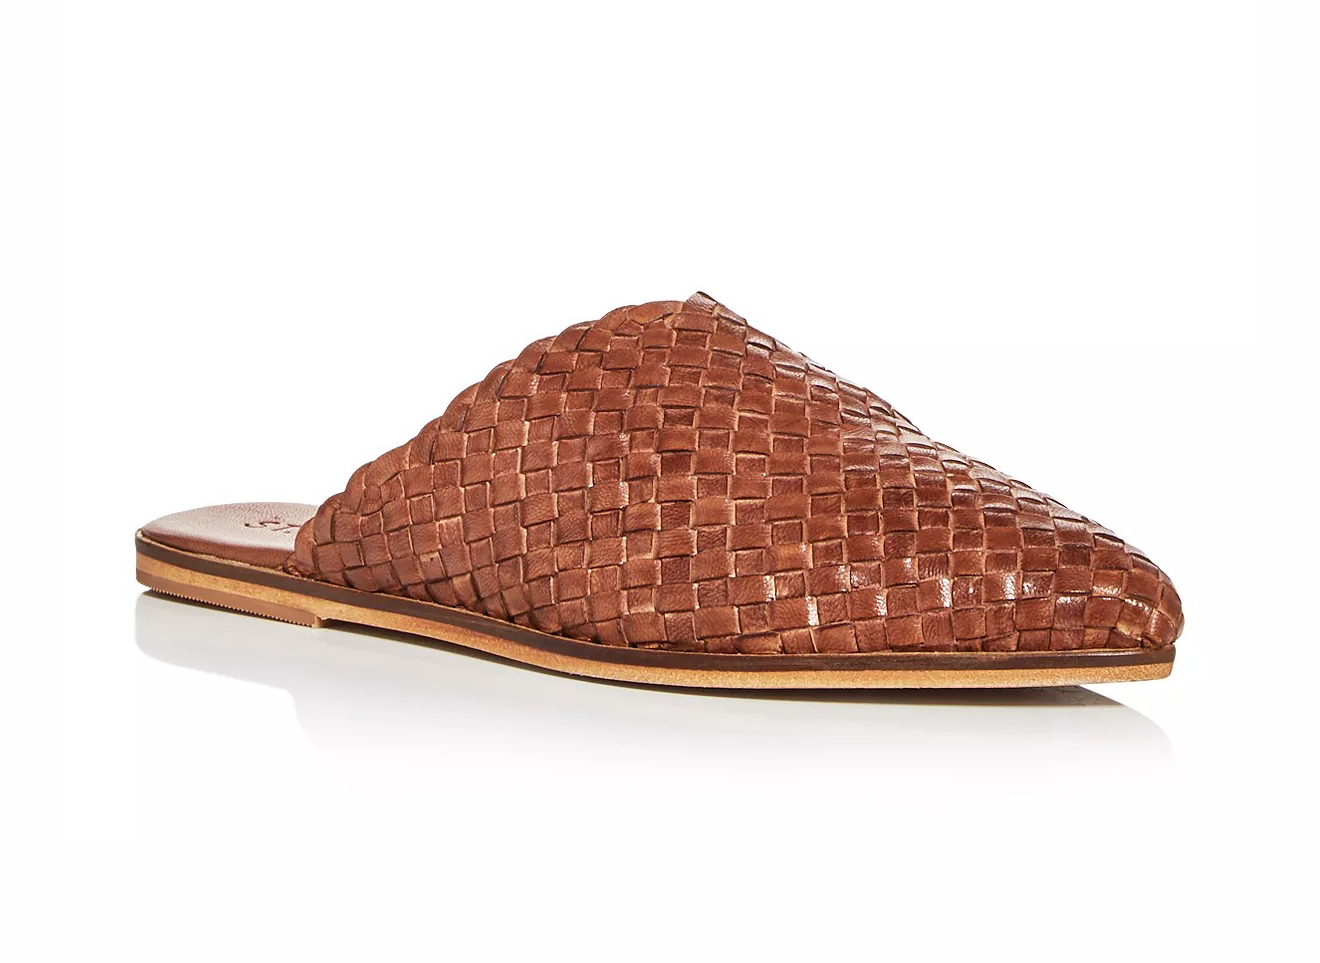 https://www.anthropologie.com/shop/jeffrey-campbell-mary-jane-flats?adtype=pla&color=040&countryCode=US&creative=353272604049&device=c&gclid=Cj0KCQjw9ZzzBRCKARIsANwXaeLspFD4UU3DZinPoYyyI2ir_EvWGwvwbrrr0XZ-lySNJzRvGza2gvMaAgOdEALw_wcB&gclsrc=aw.ds&inventoryCountry=US&matchtype=&mrkgadid=3360048135&mrkgcl=694&network=g&product_id=55221568&quantity=1&size=8.5&type=STANDARD&utm_campaign=US_-_Shopping_-_Shoes_-_Mobile&utm_content=US_-_Shopping_-_Shoes_-_Flats_-_Priority&utm_medium=paid_search&utm_source=Google&utm_term=1022101155552_product_type_shoes_custom_label_0_non_plus_product_type_flats_c